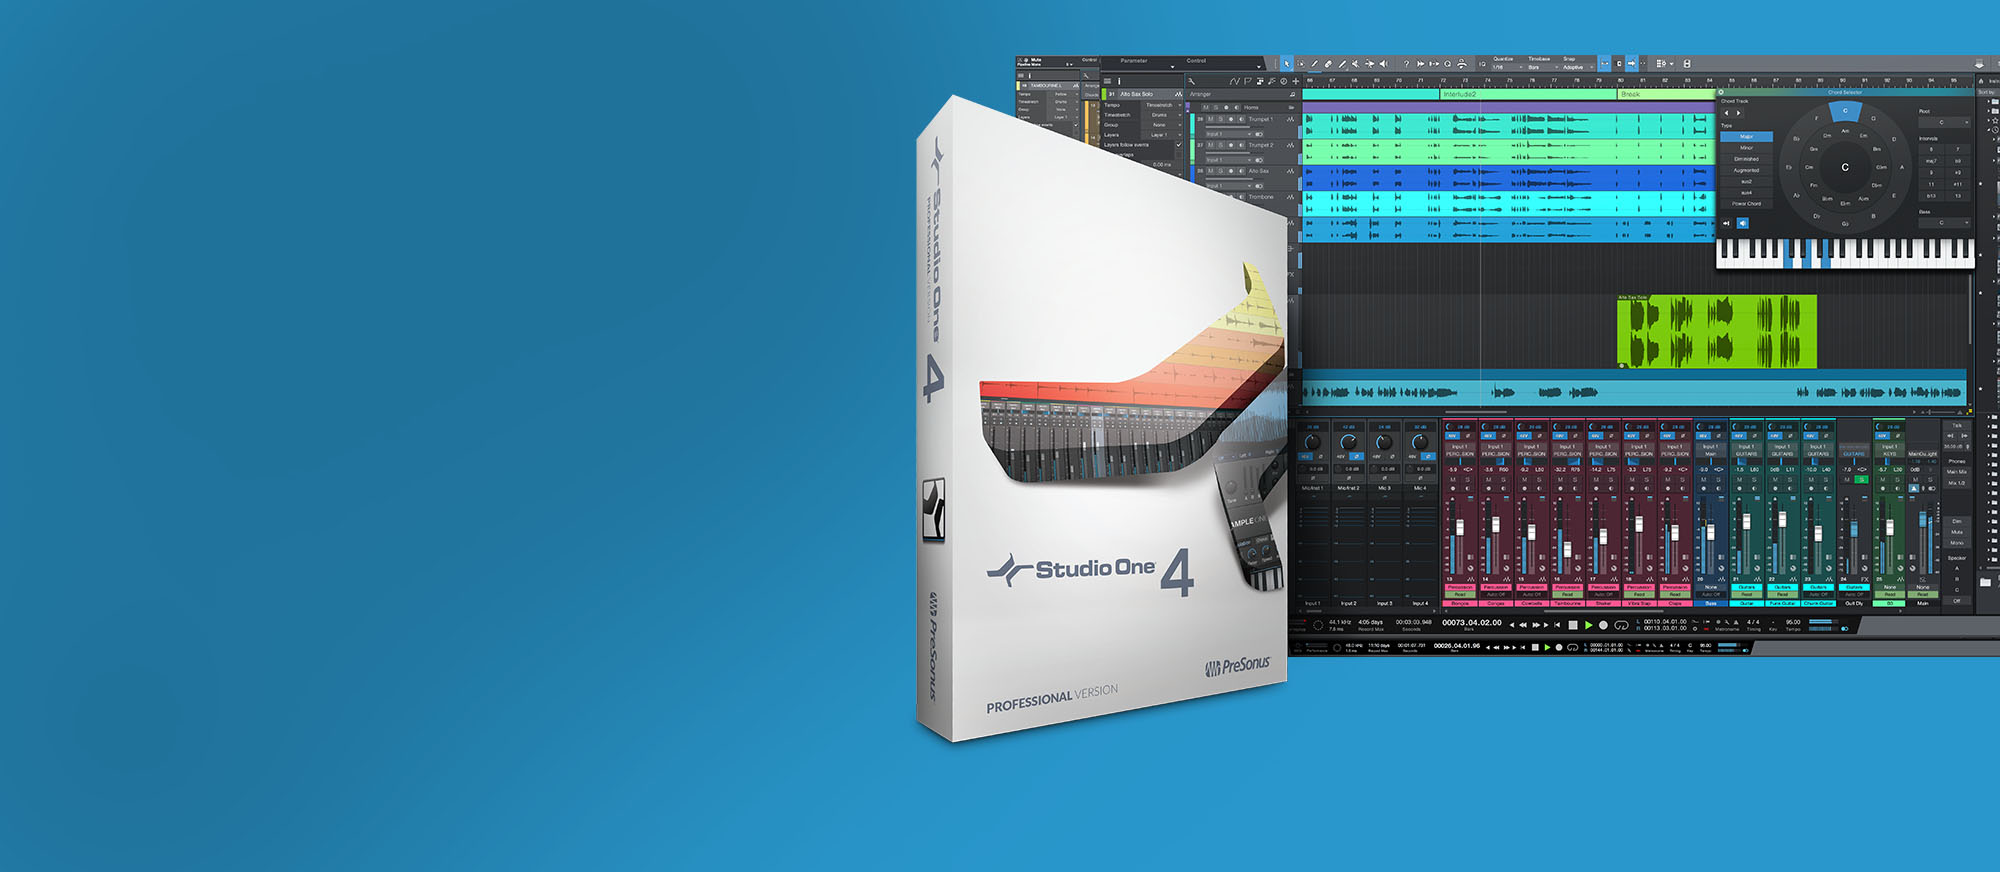 descargar presonus studio one full gratis